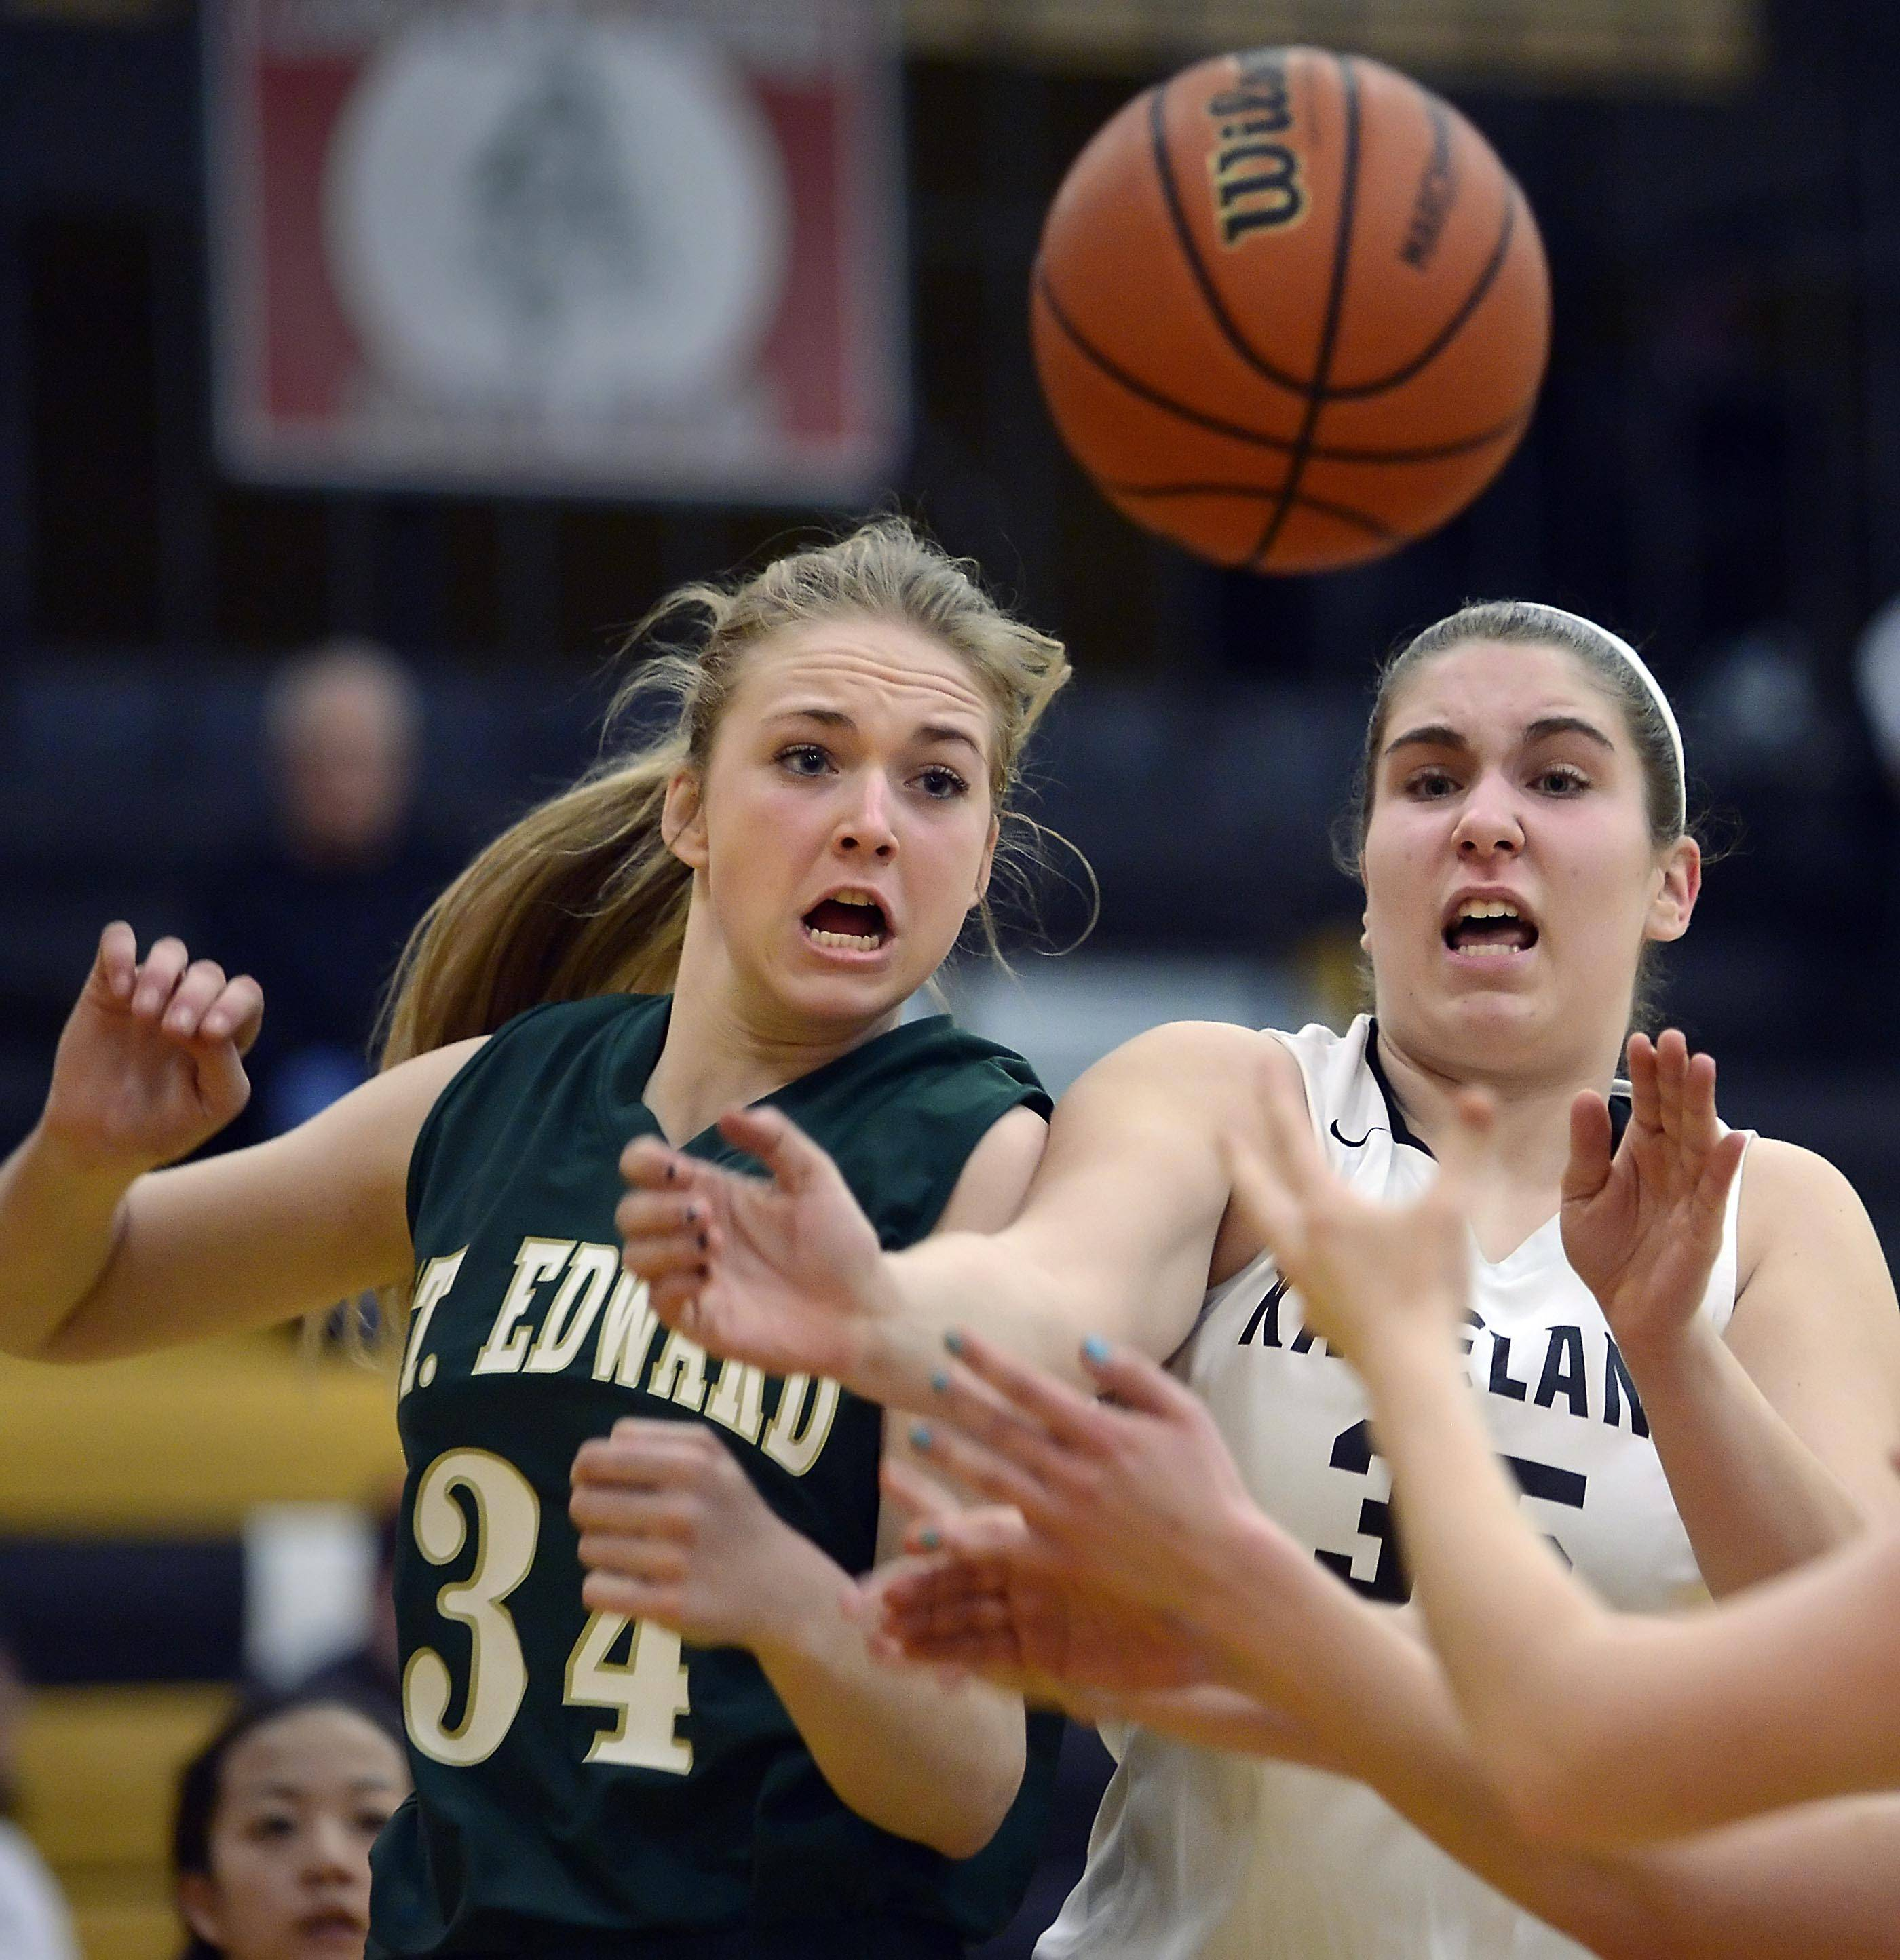 St. Edward's Cece Rapp and Kaneland's Bailey Crimmins fight for a rebound late in the game Monday in the Class 3A Sycamore regional.